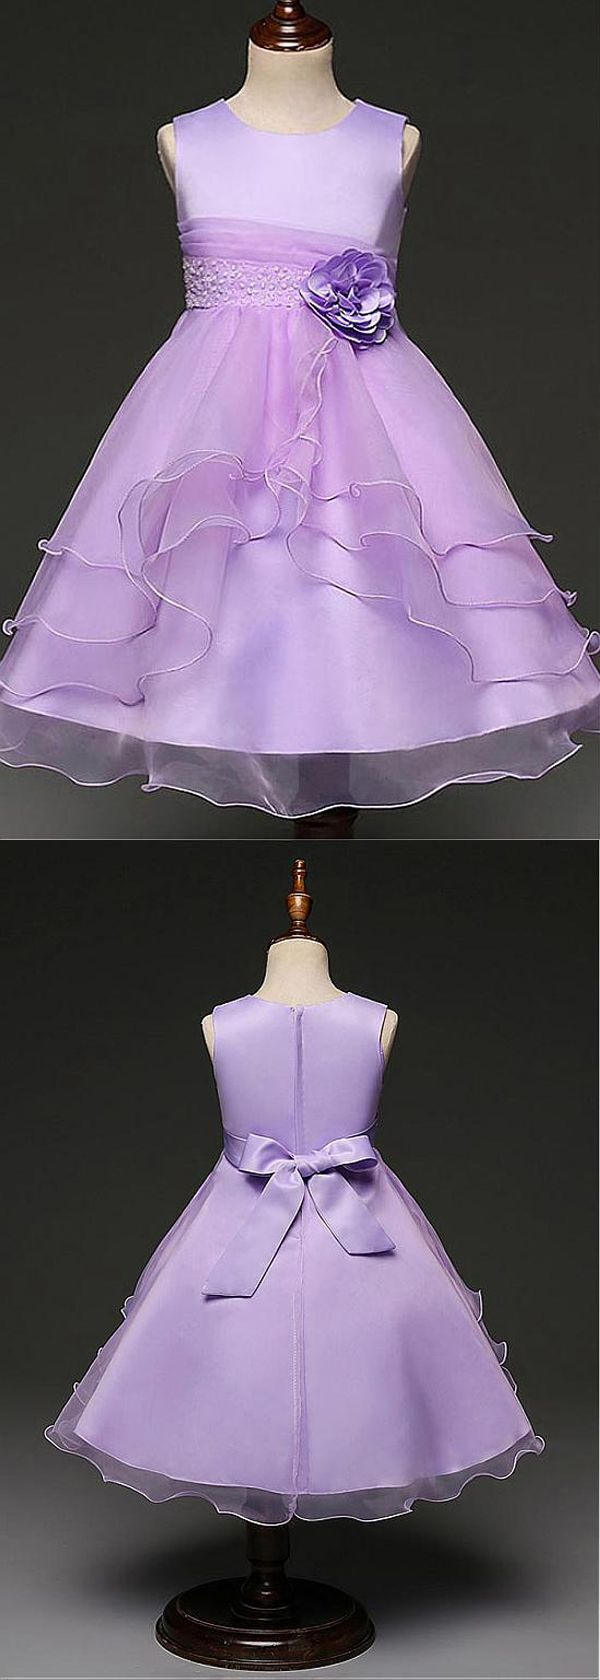 In Stock Wonderful Organza Jewel Neckline Ankle-length A-line Flower Girl Dresses With Beaded Handmade Flowers & Belt